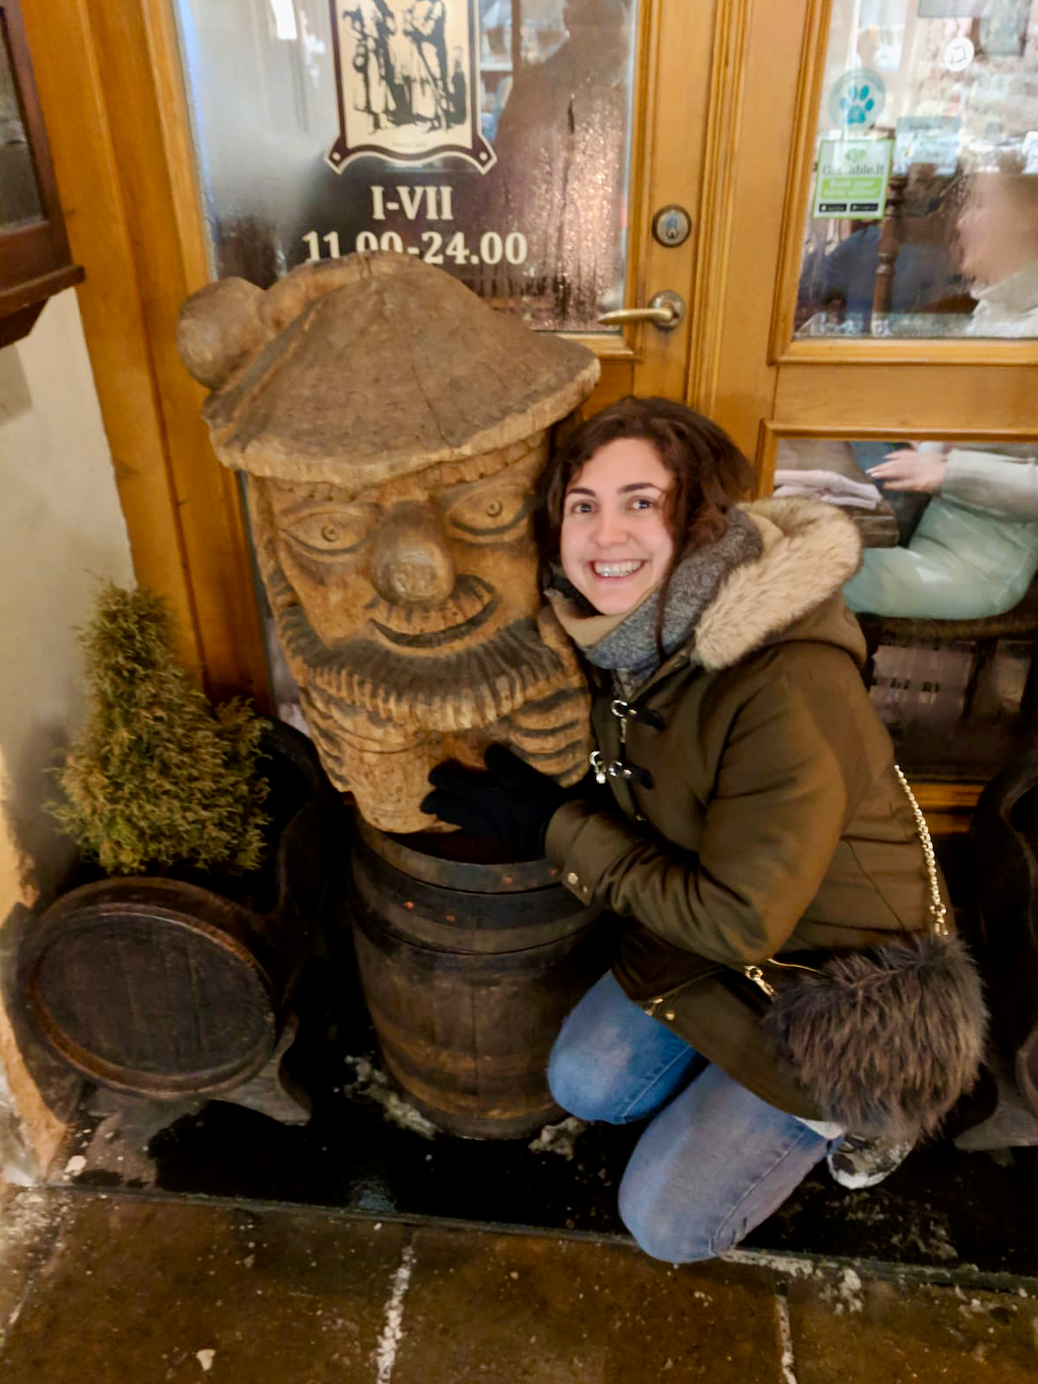 Best Restaurants in Vilnius: Nell, with slightly red wine stained teeth, crouching down next to a wooden statue of a face balanced on top of a beer barrel and smiling.